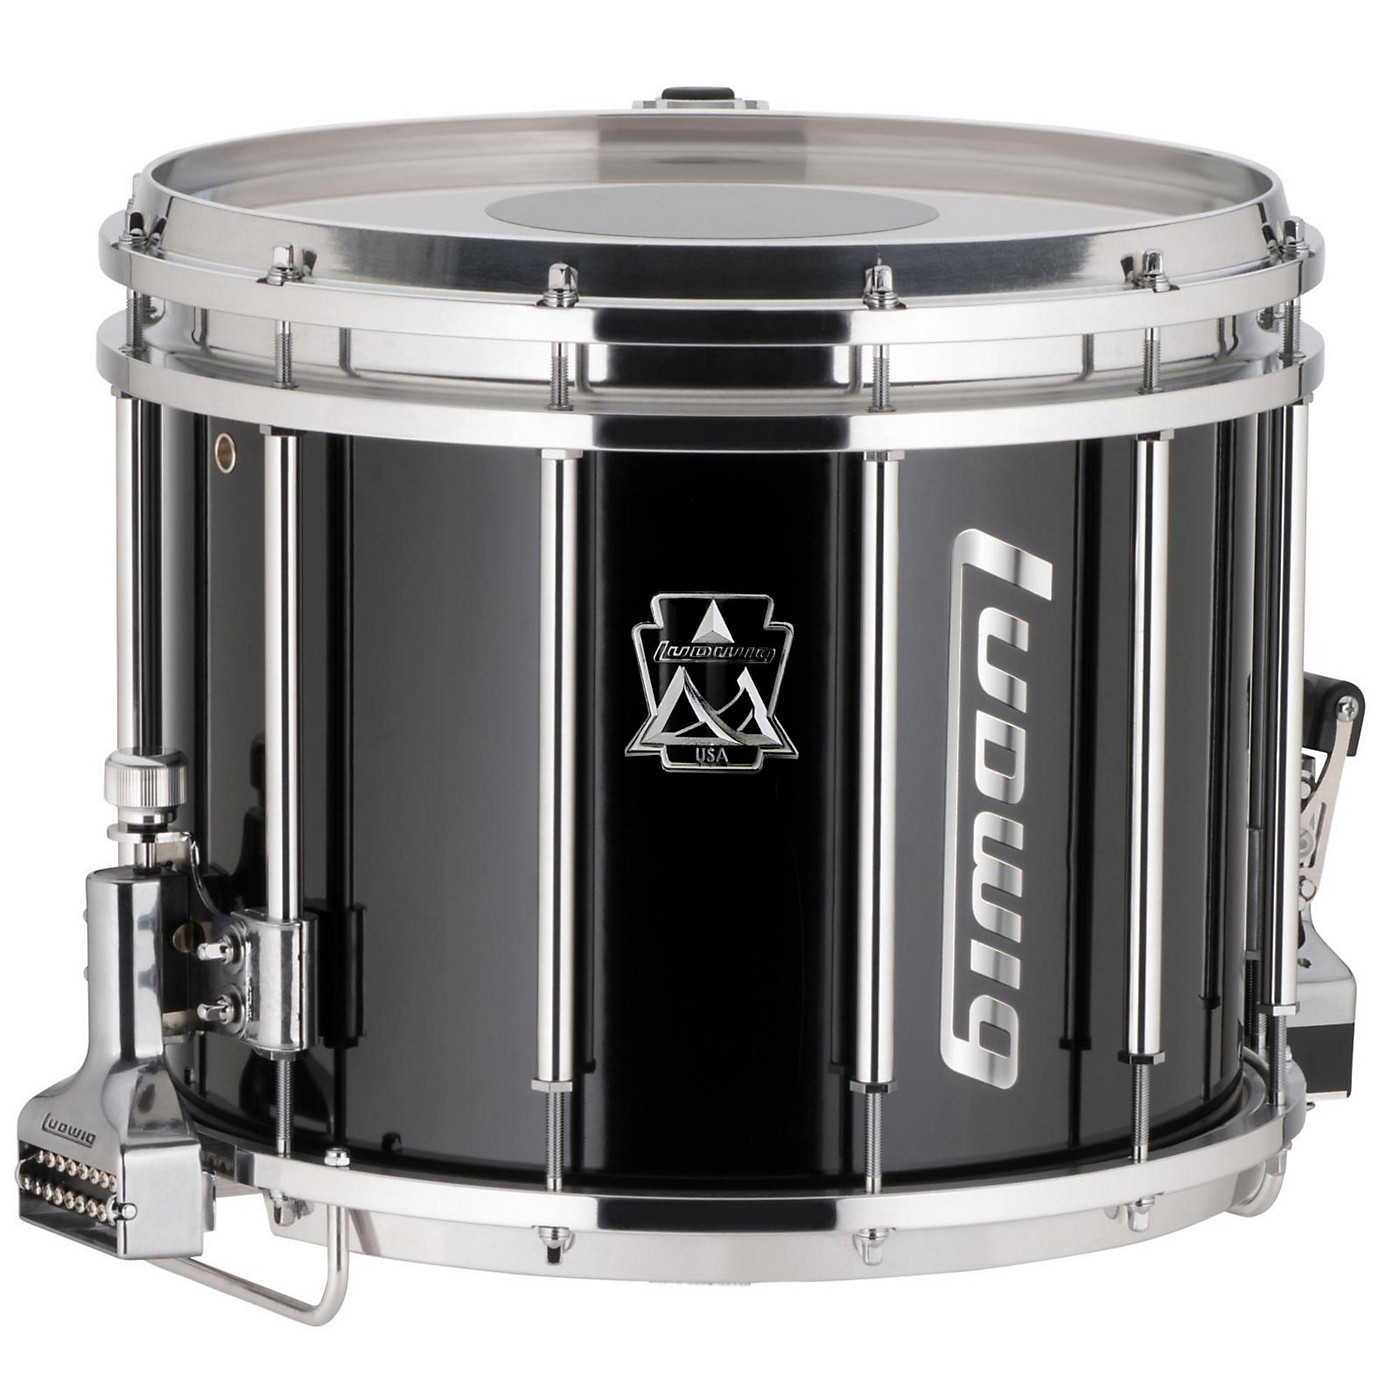 Ludwig Ultimate Marching Snare Drum, 14 x 12 in., Black thumbnail